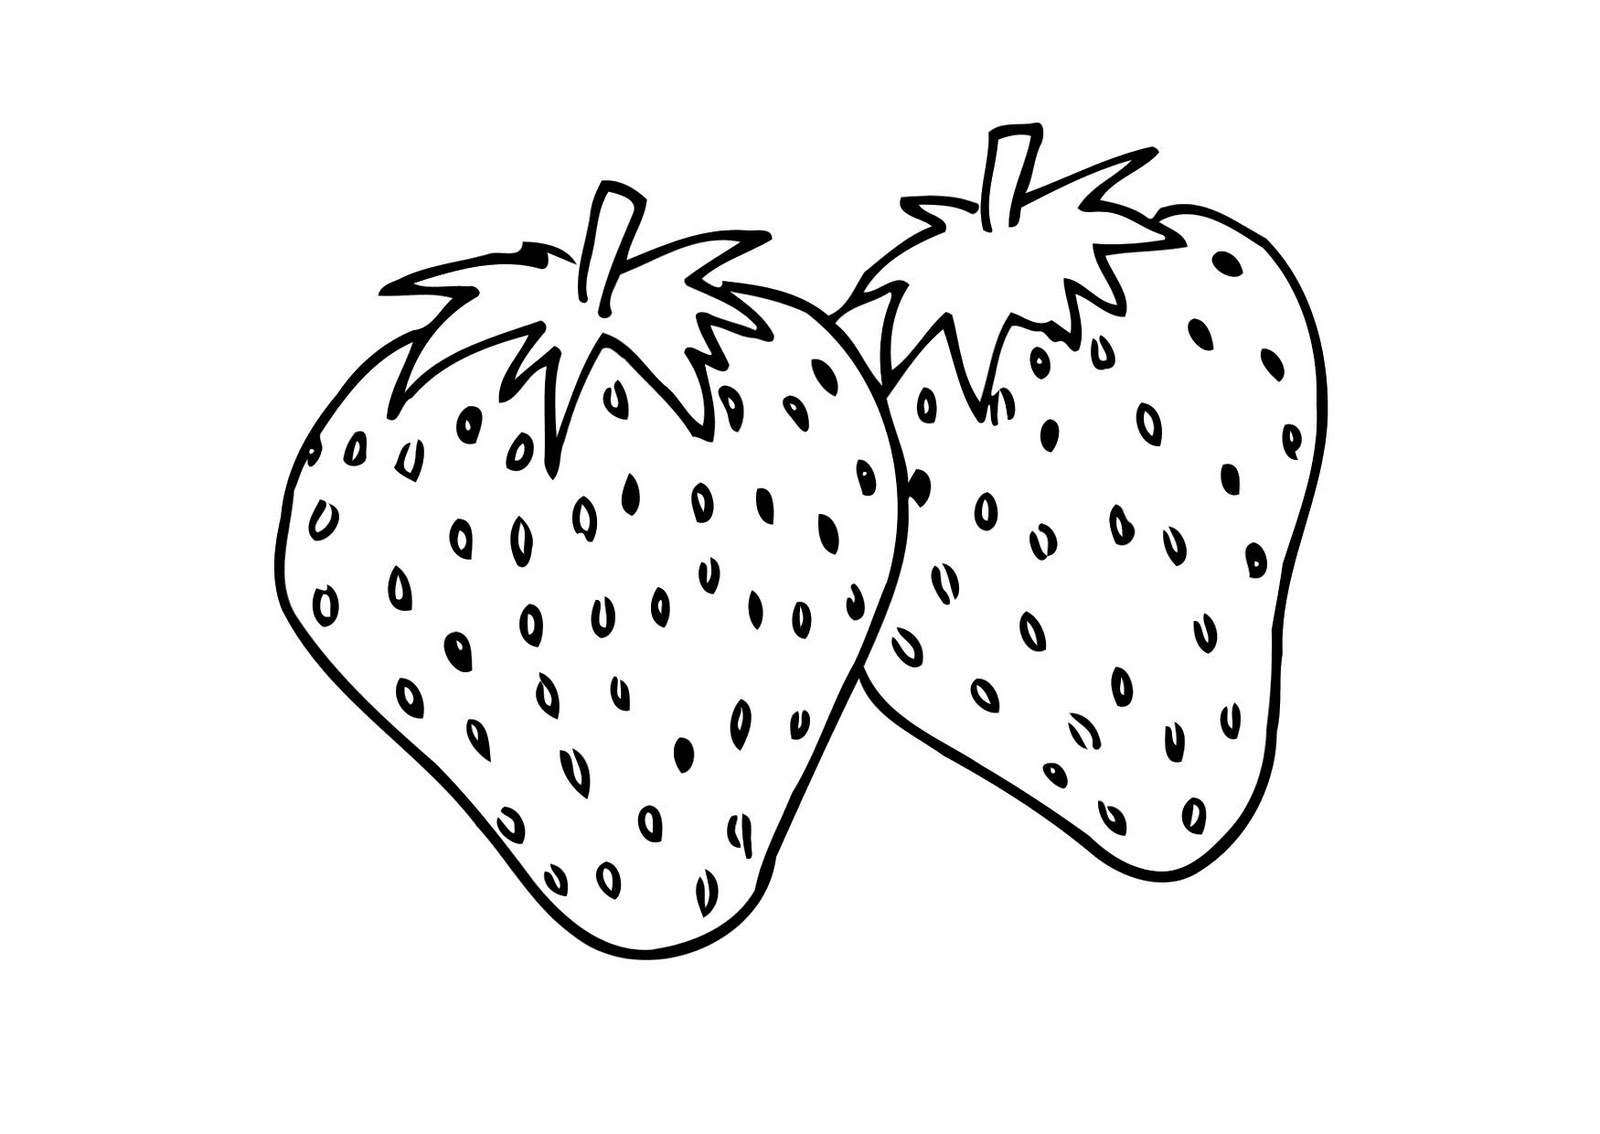 colouring pages of strawberry strawberry coloring pages download and print strawberry pages of colouring strawberry